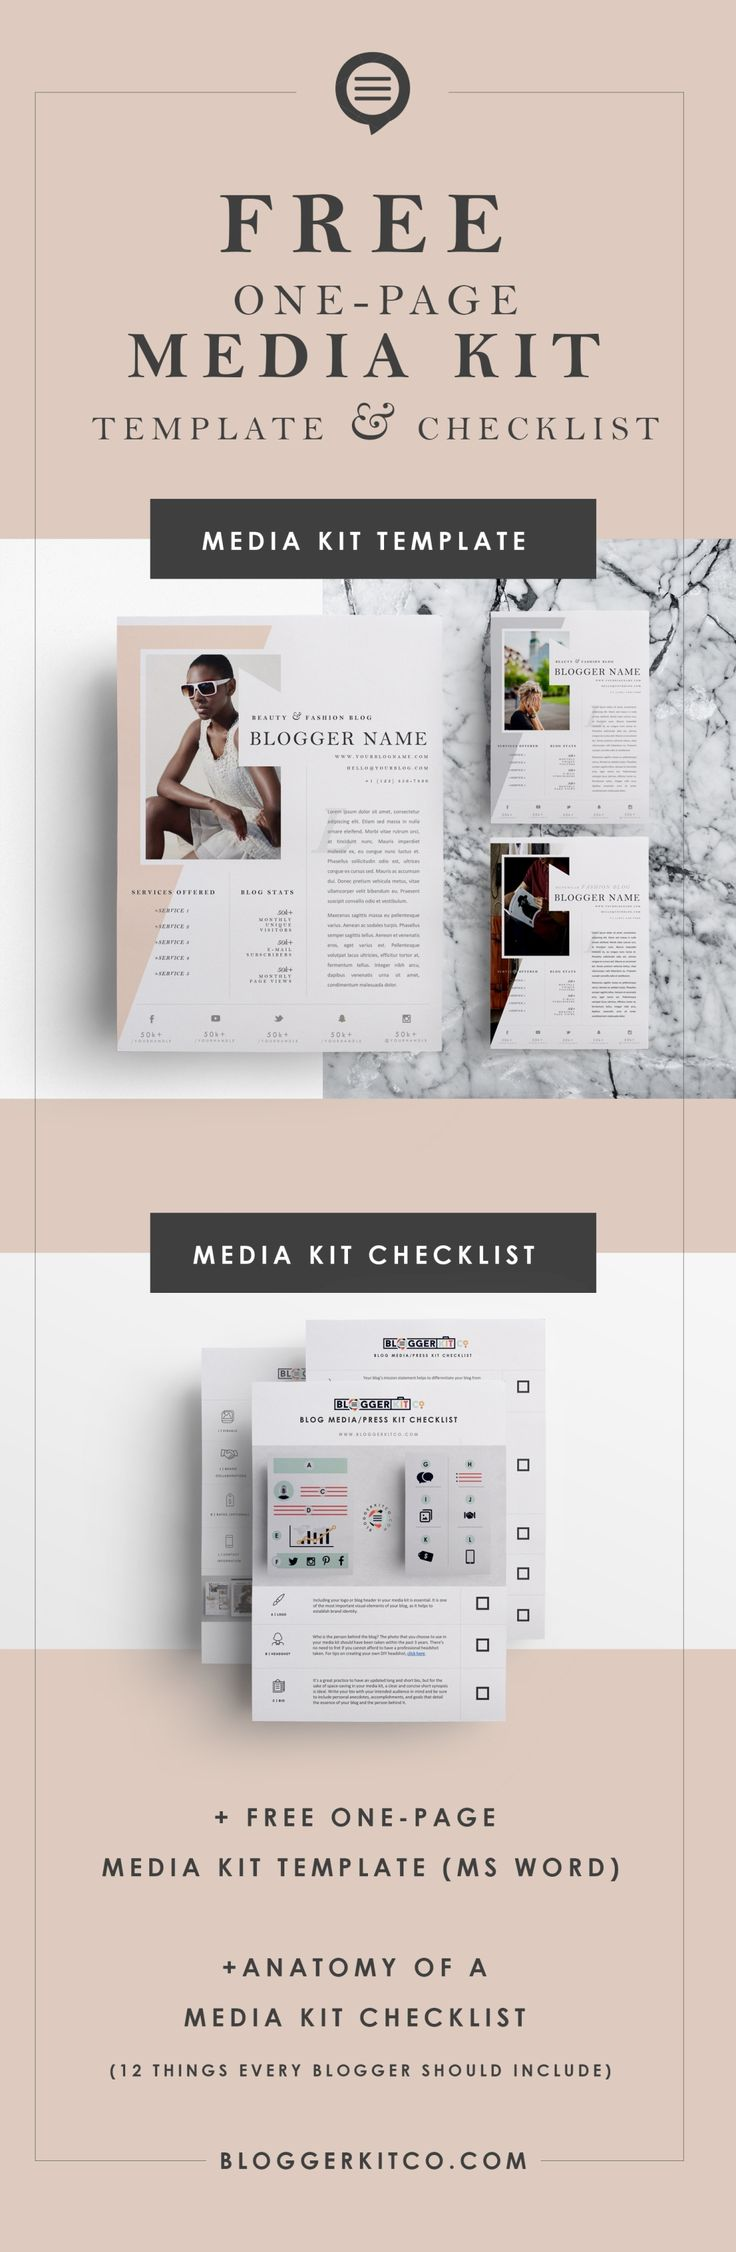 wedding planning checklist spreadsheet free%0A Here u    s a Free Media Kit Template   Checklist for Bloggers and